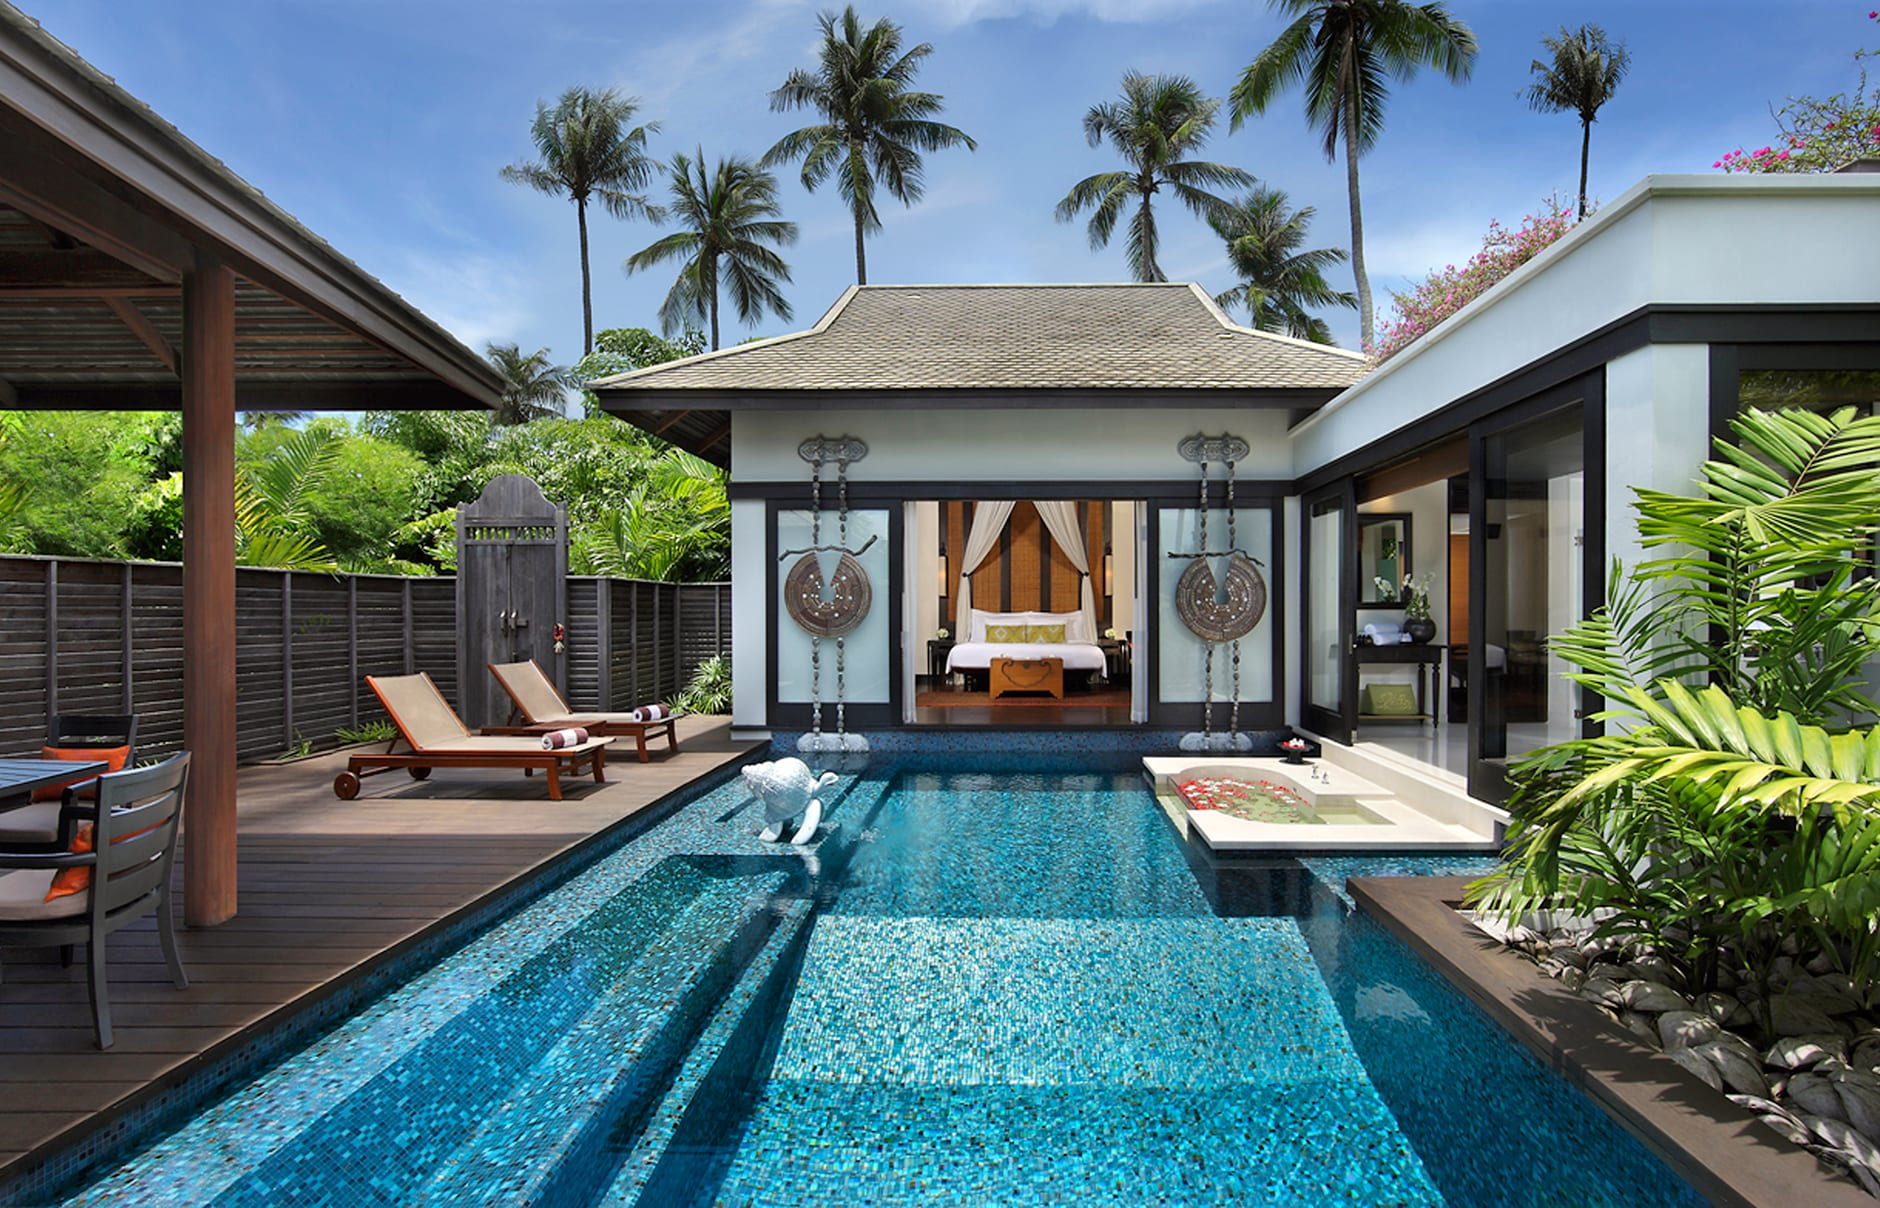 Anantara phuket villas luxury hotels travelplusstyle for Pool villa design